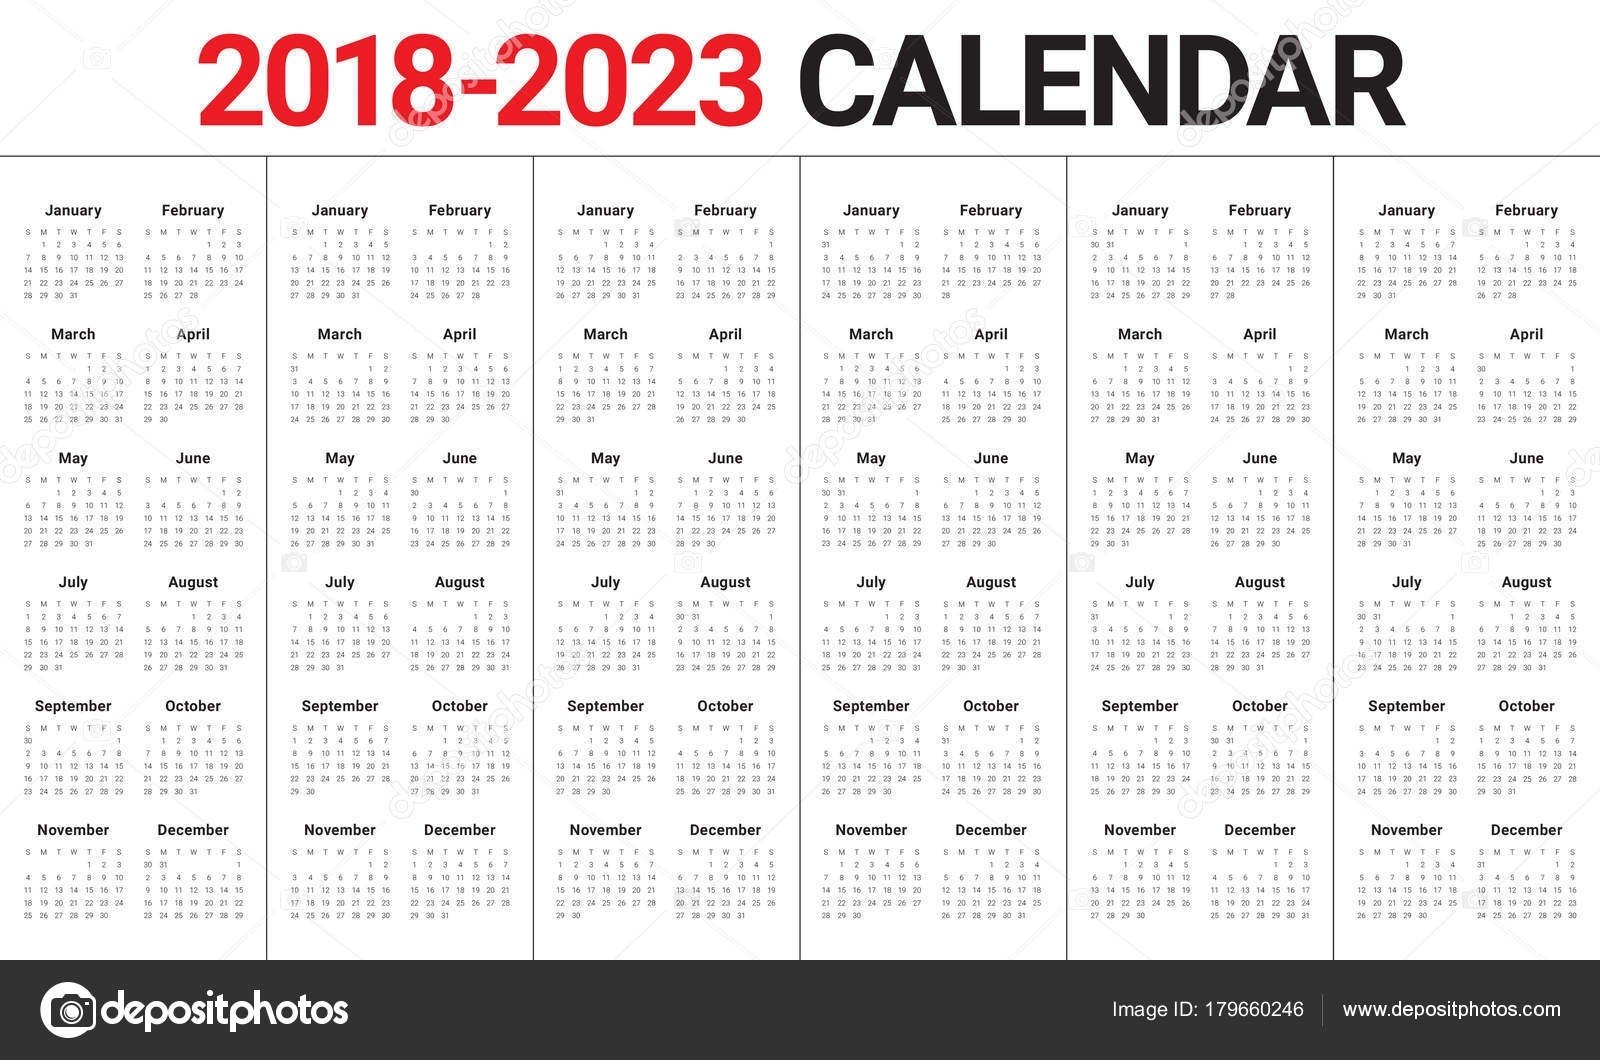 3 Year Calendar 2021 To 2023 | Calendar Printables Free Templates-3 Year Calendar 2021 To 2023